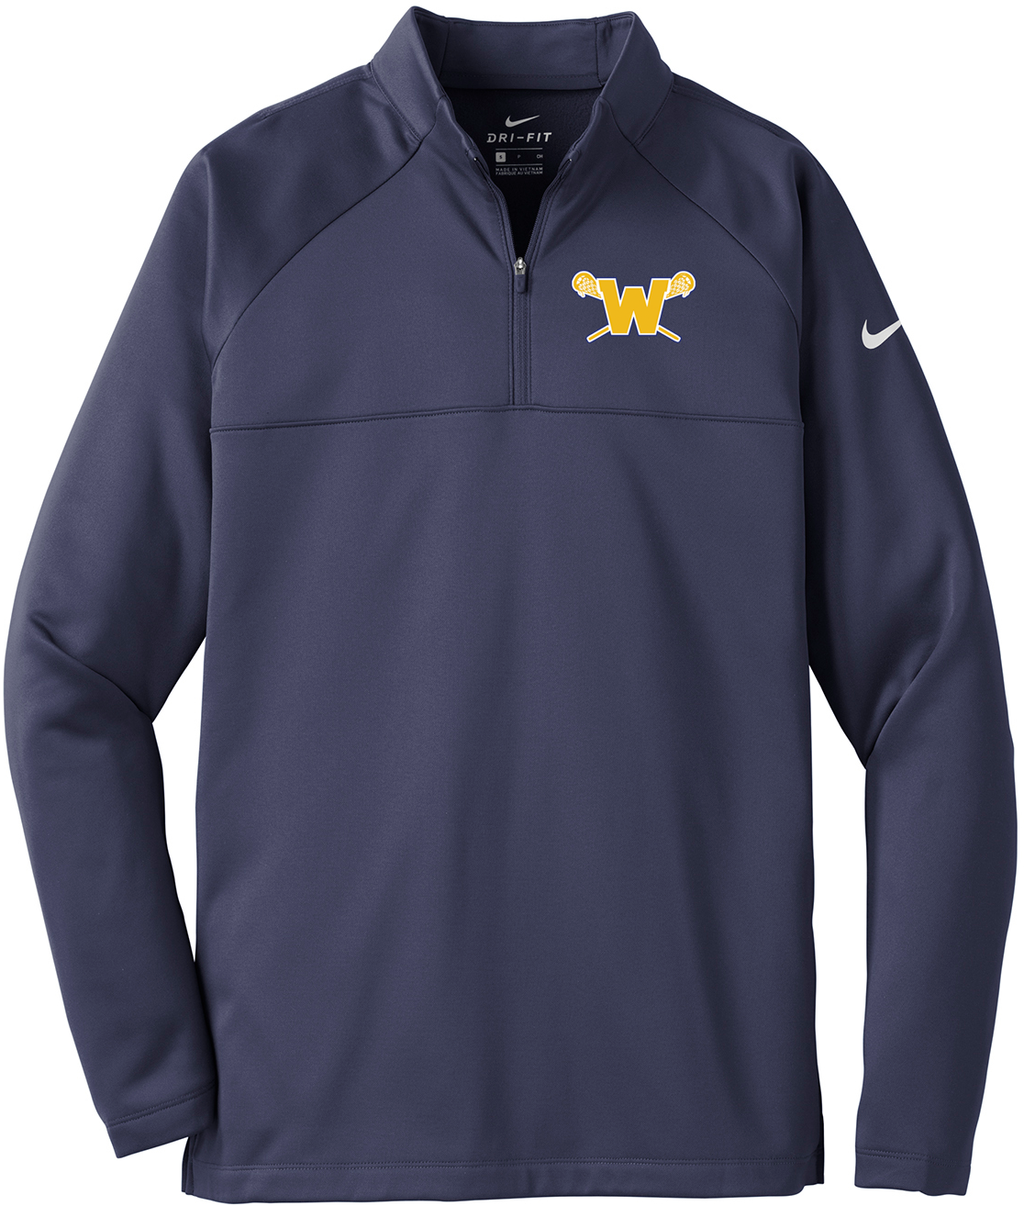 Webster Lacrosse Navy Nike Therma-FIT Fleece